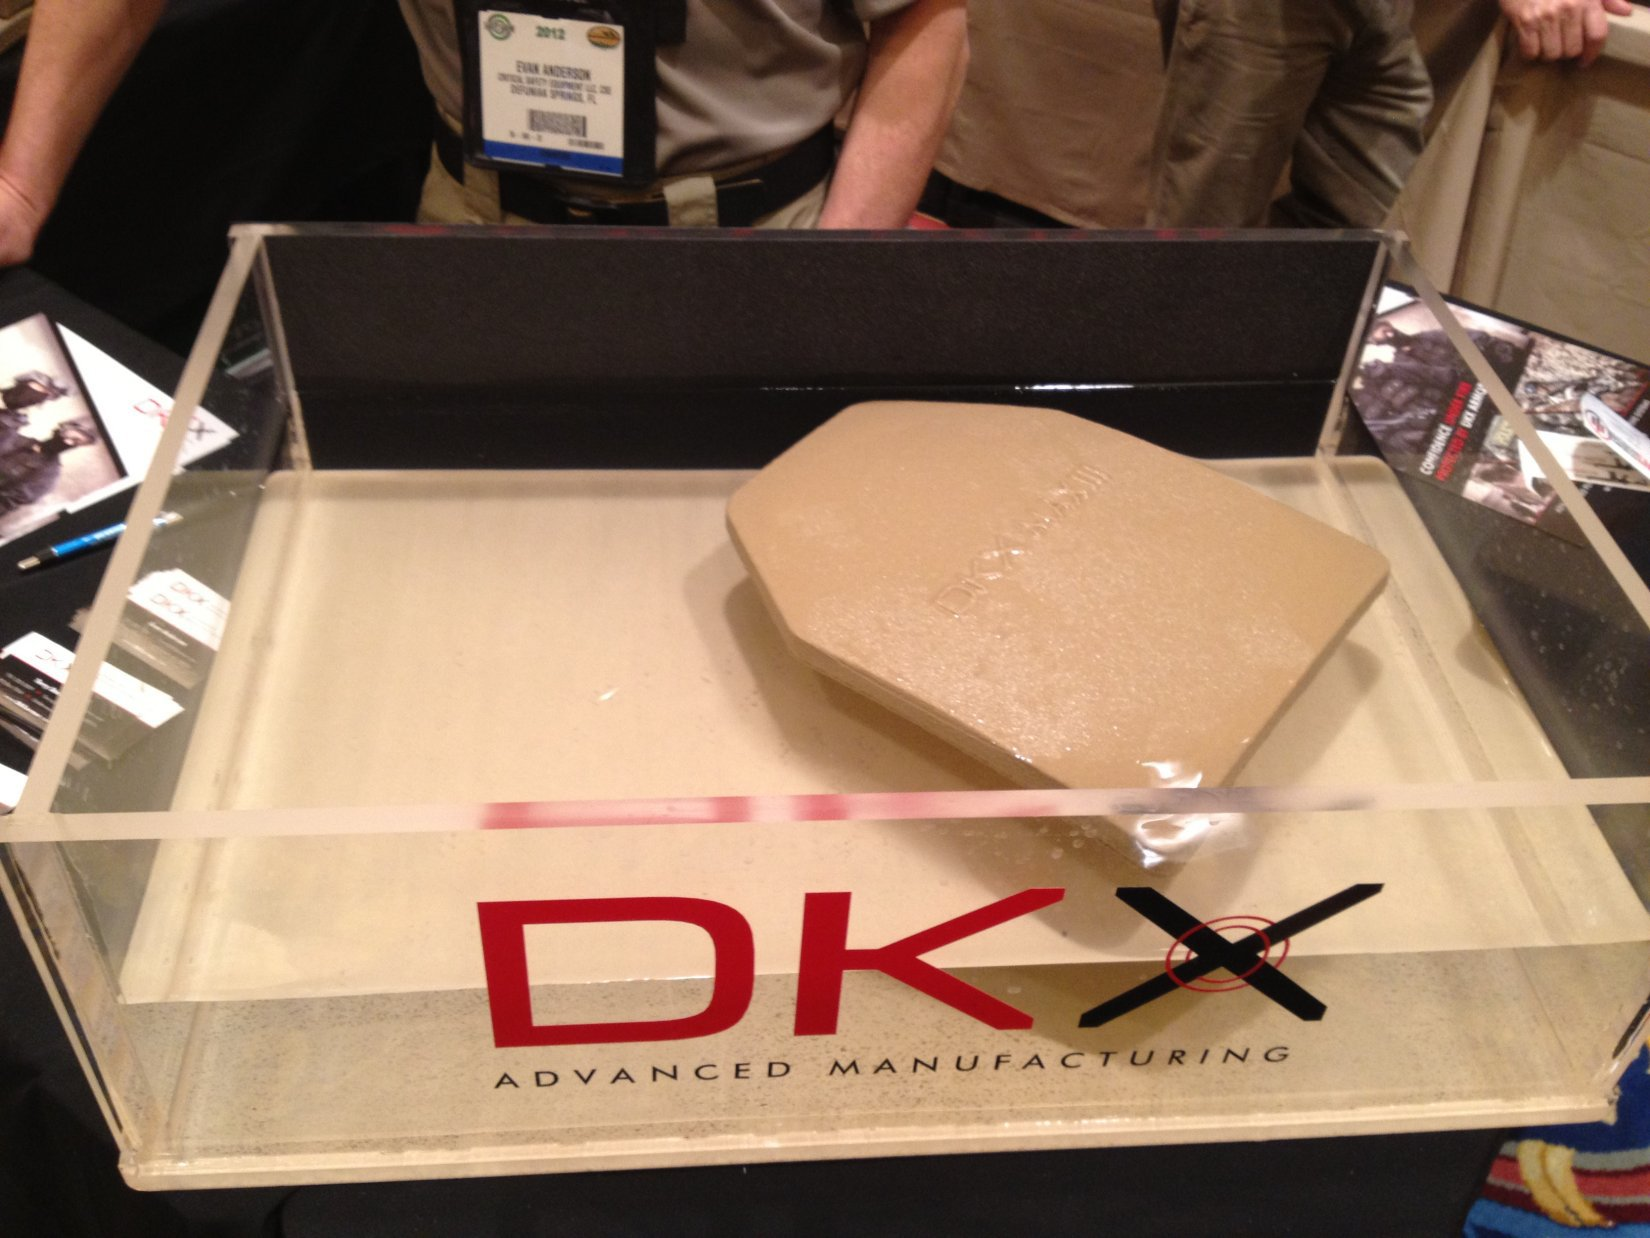 "DKX MAX III and Developmental MAX IV Lightweight, Multi-Hit/Drop-Resistant Dyneema ""Floaty Armor"" (Floating Armor) Maritime Hard Armor Plates at SHOT Show 2012 (Video!)"